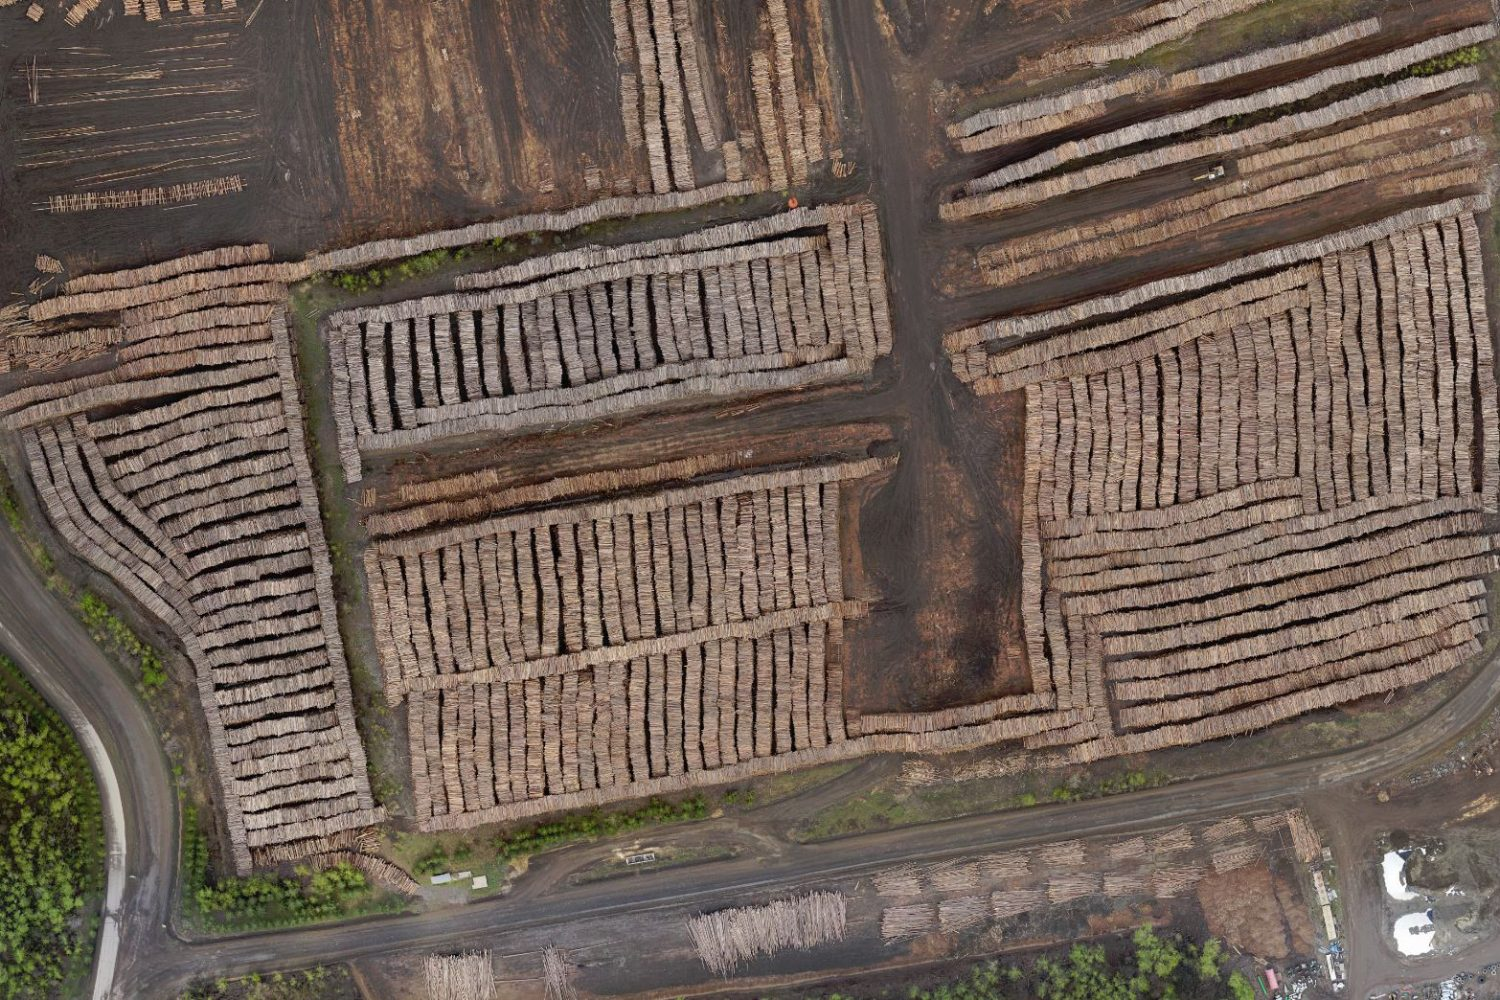 UAV_Inventory_Logpile1_Cropped